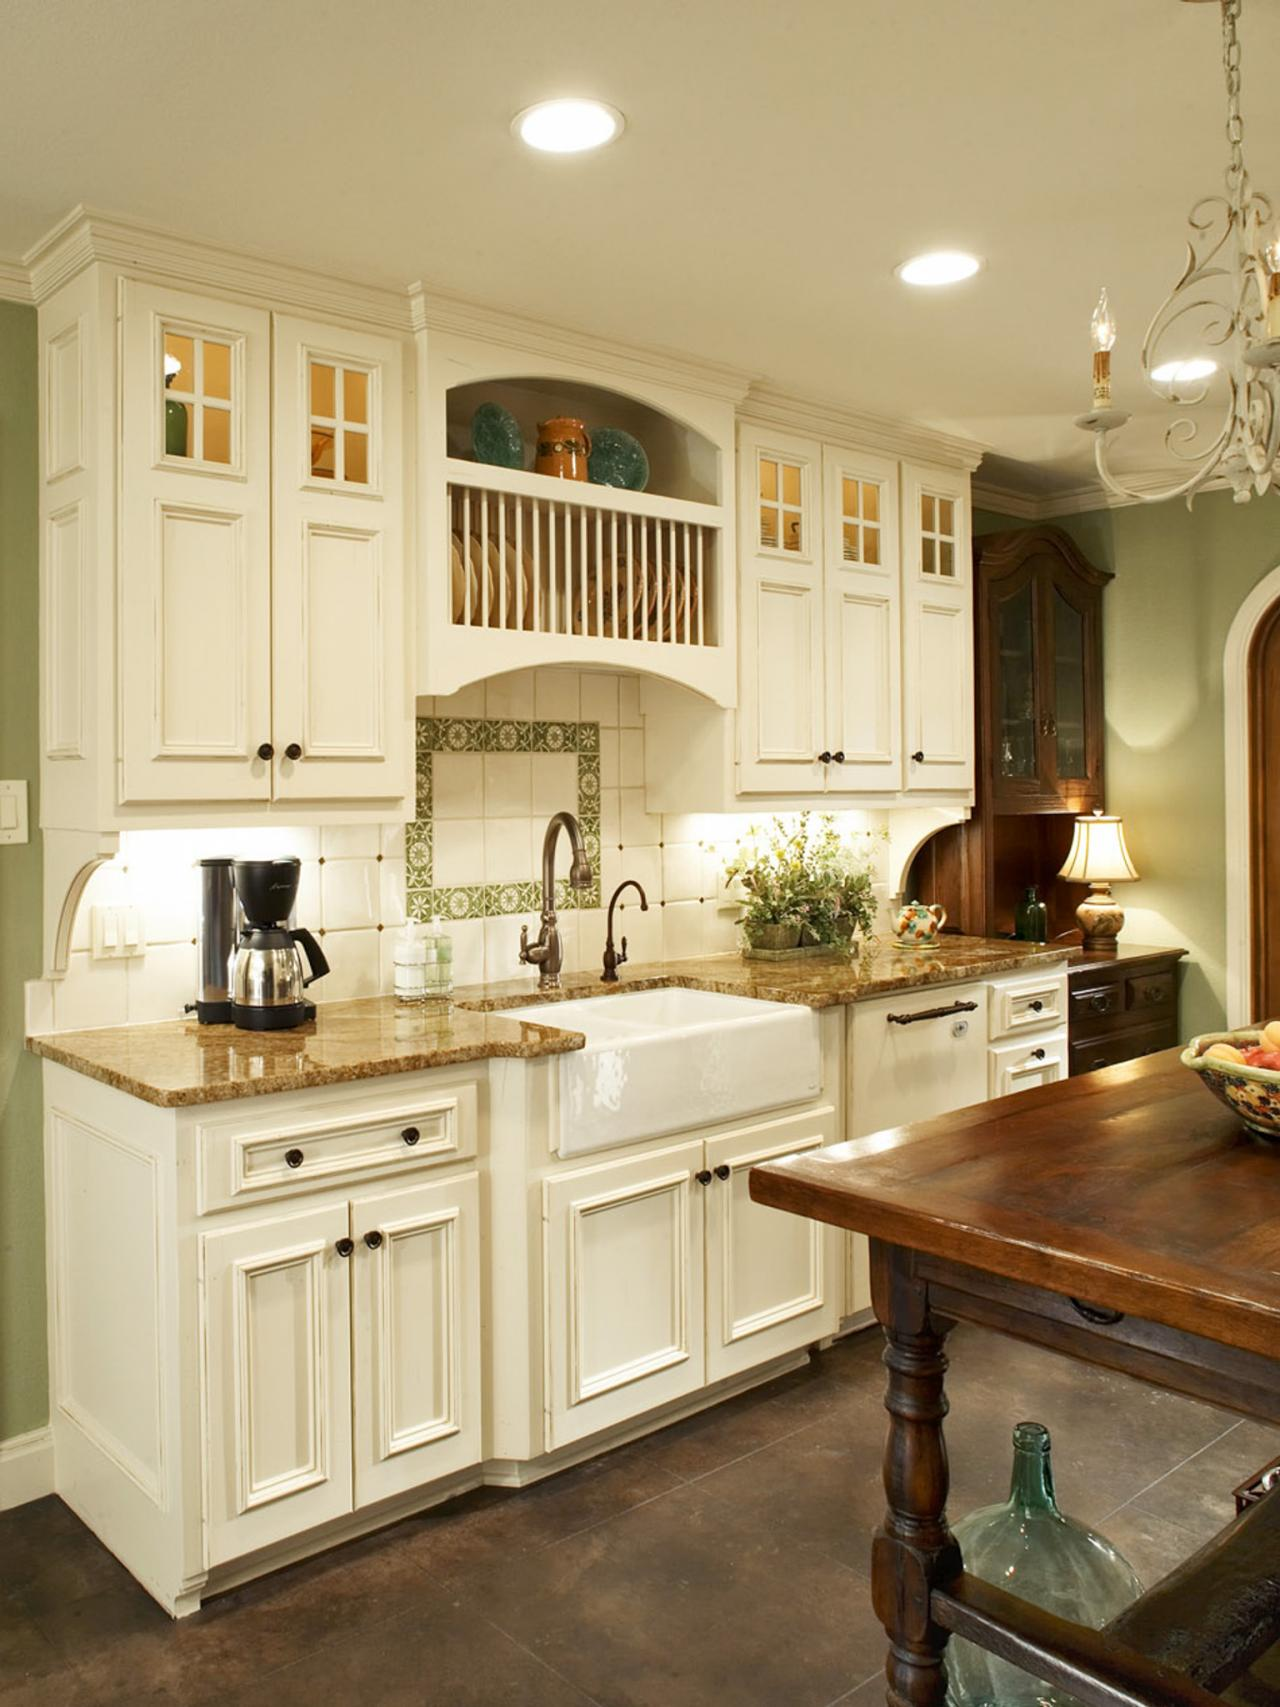 French country kitchen makeover bonnie pressley hgtv for Country kitchen cabinets